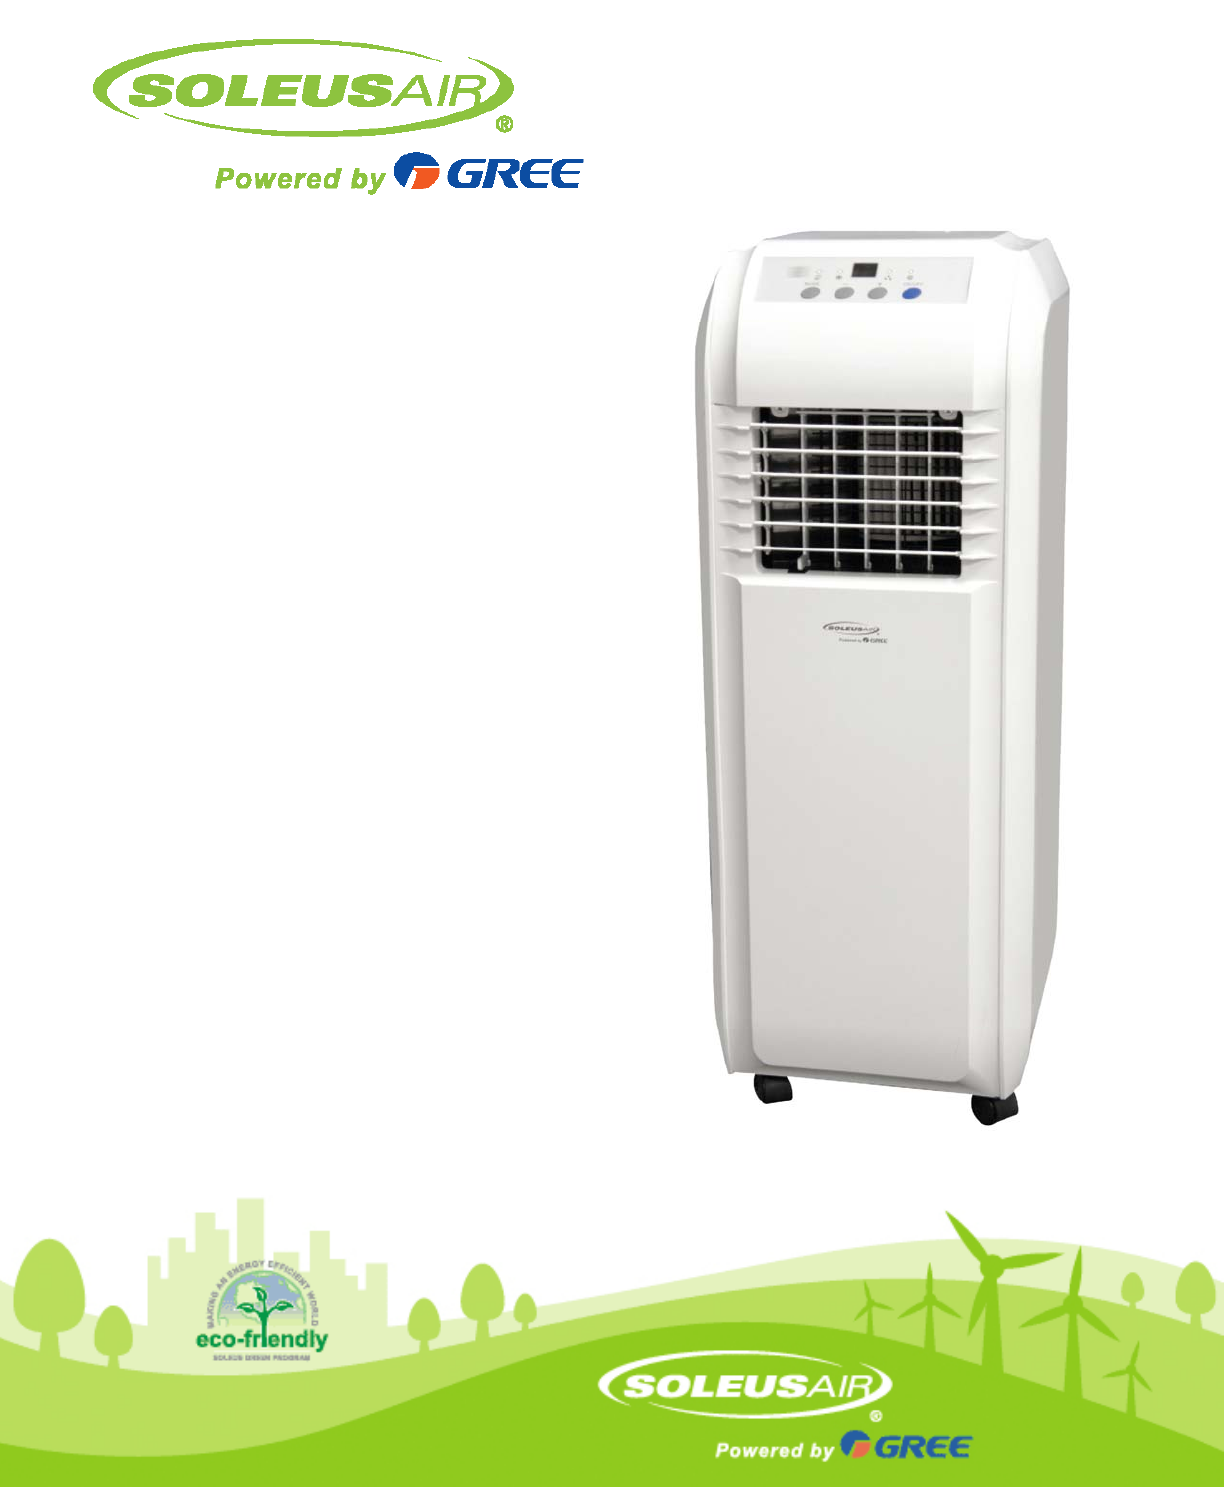 Lg Portable Air Conditioner 8000 Btu Manual Manual Guide